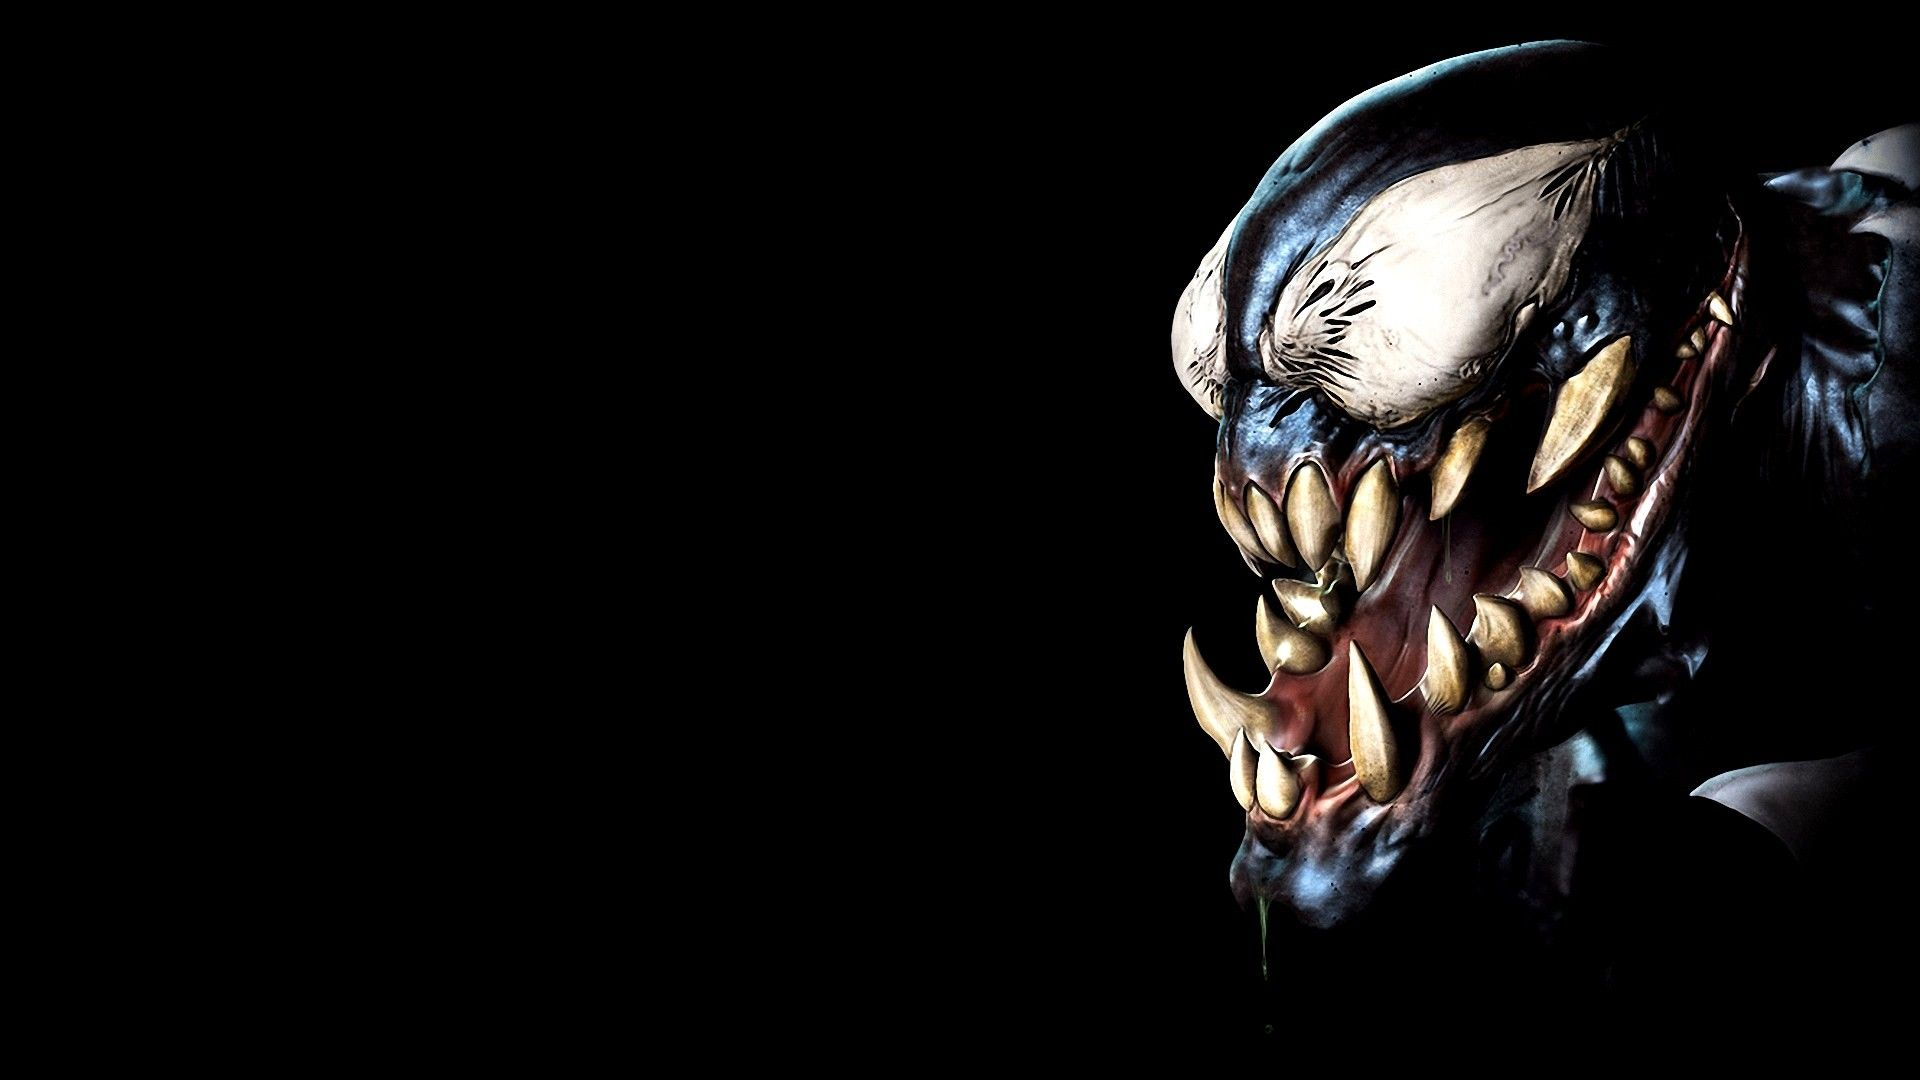 1920x1080 Spider Man Villains Images Venom Wallpaper And Background